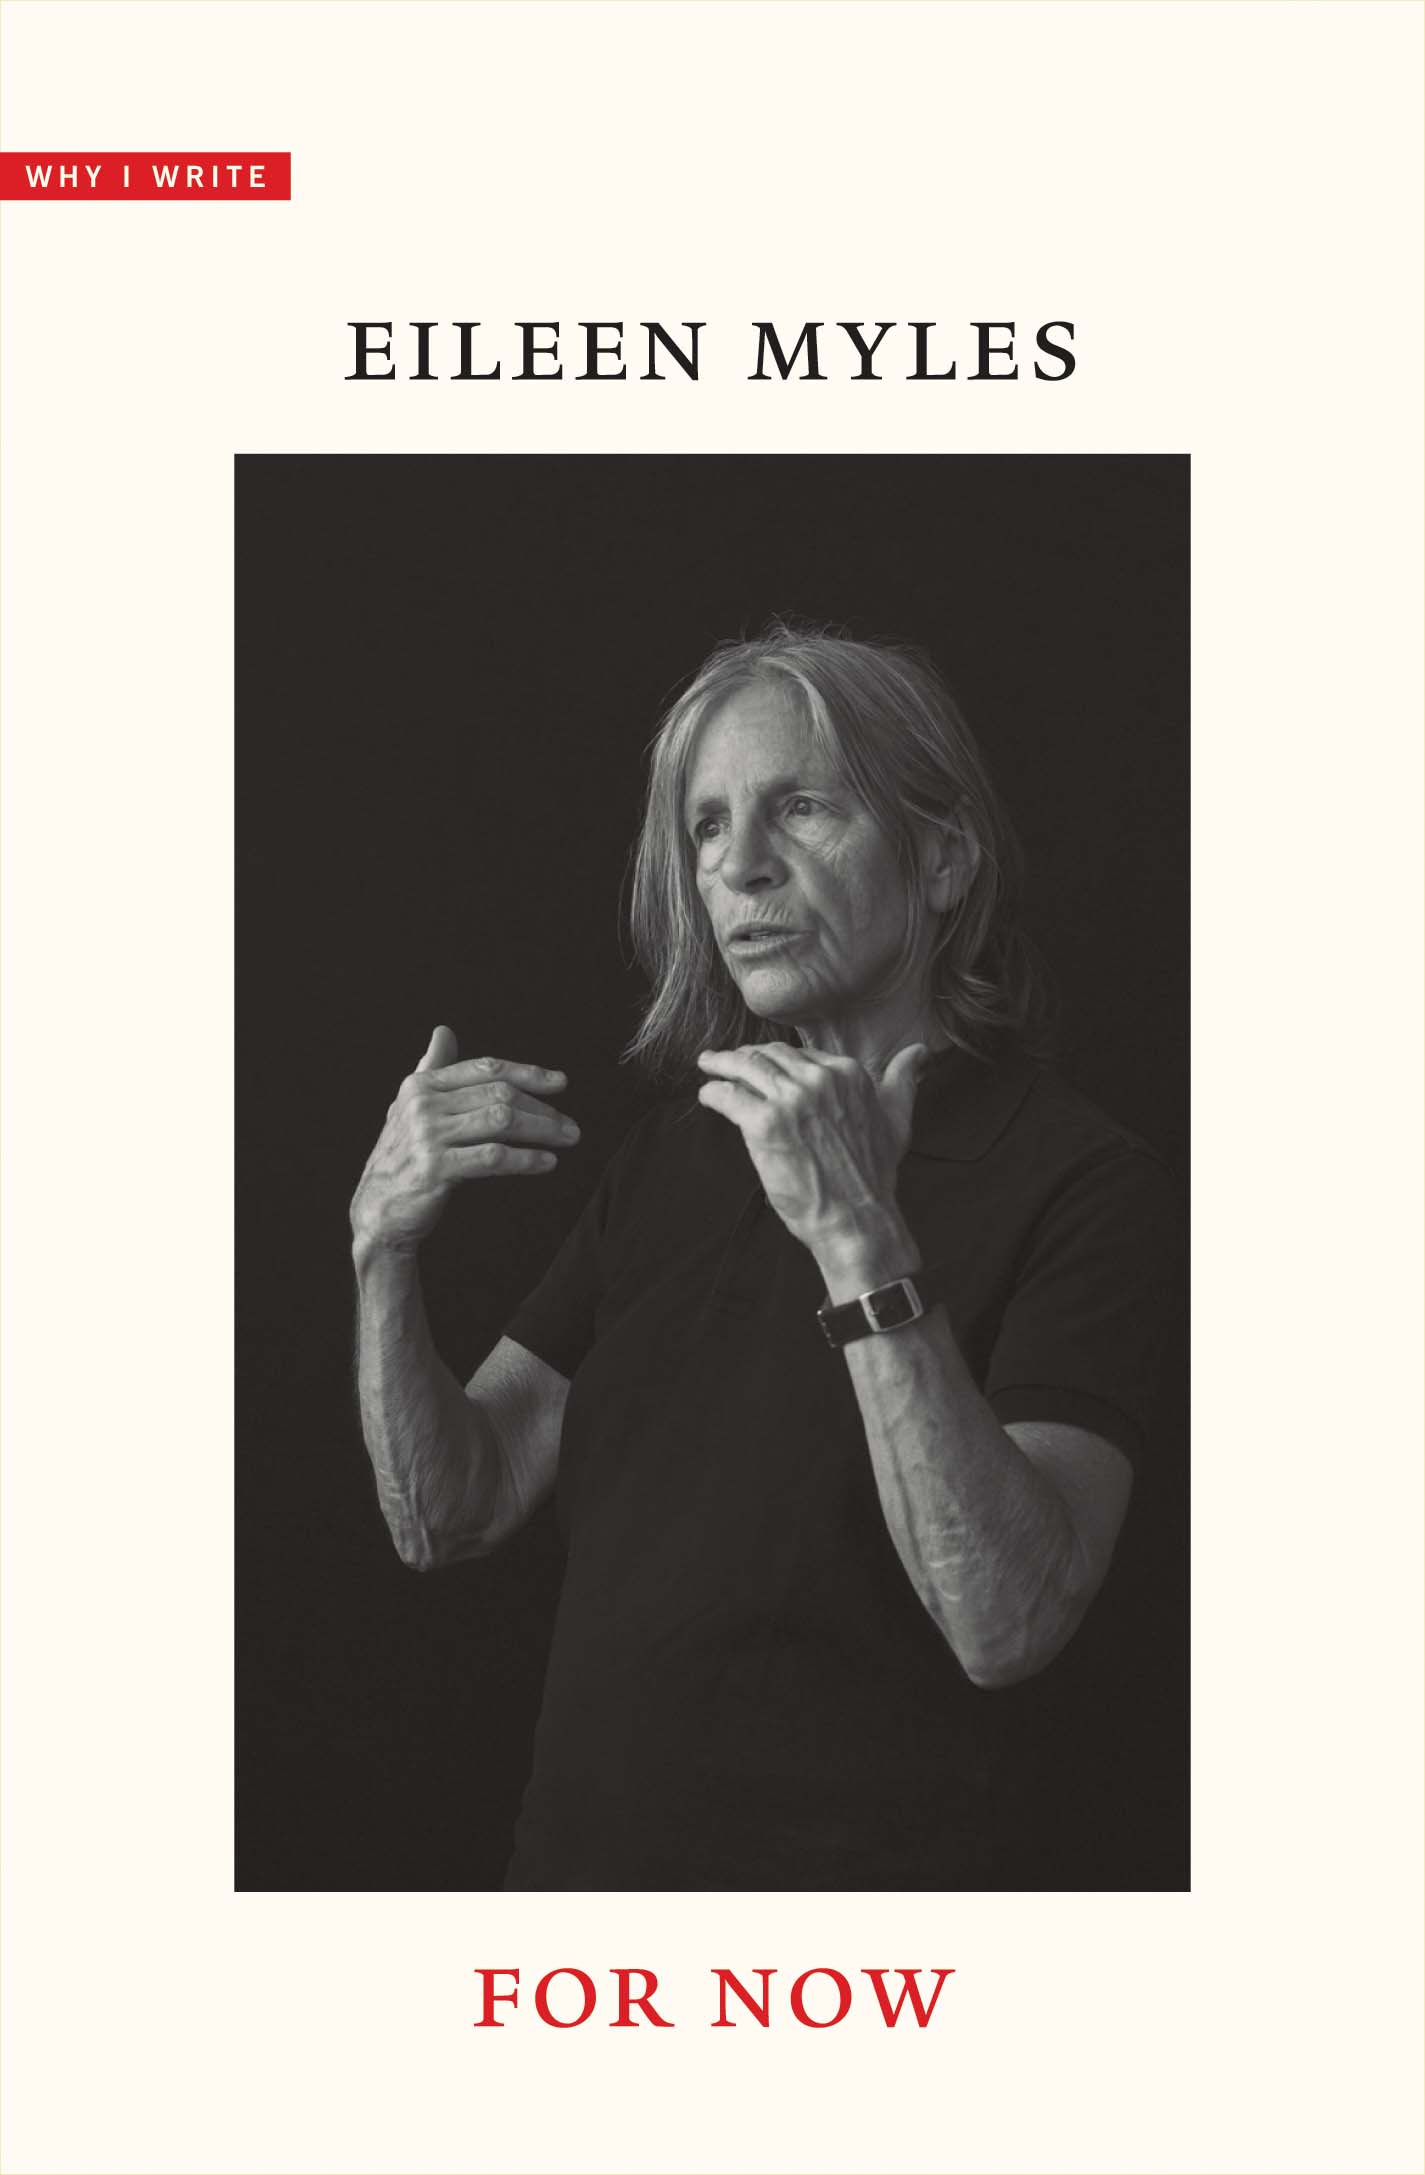 For Now by Eileen Myles